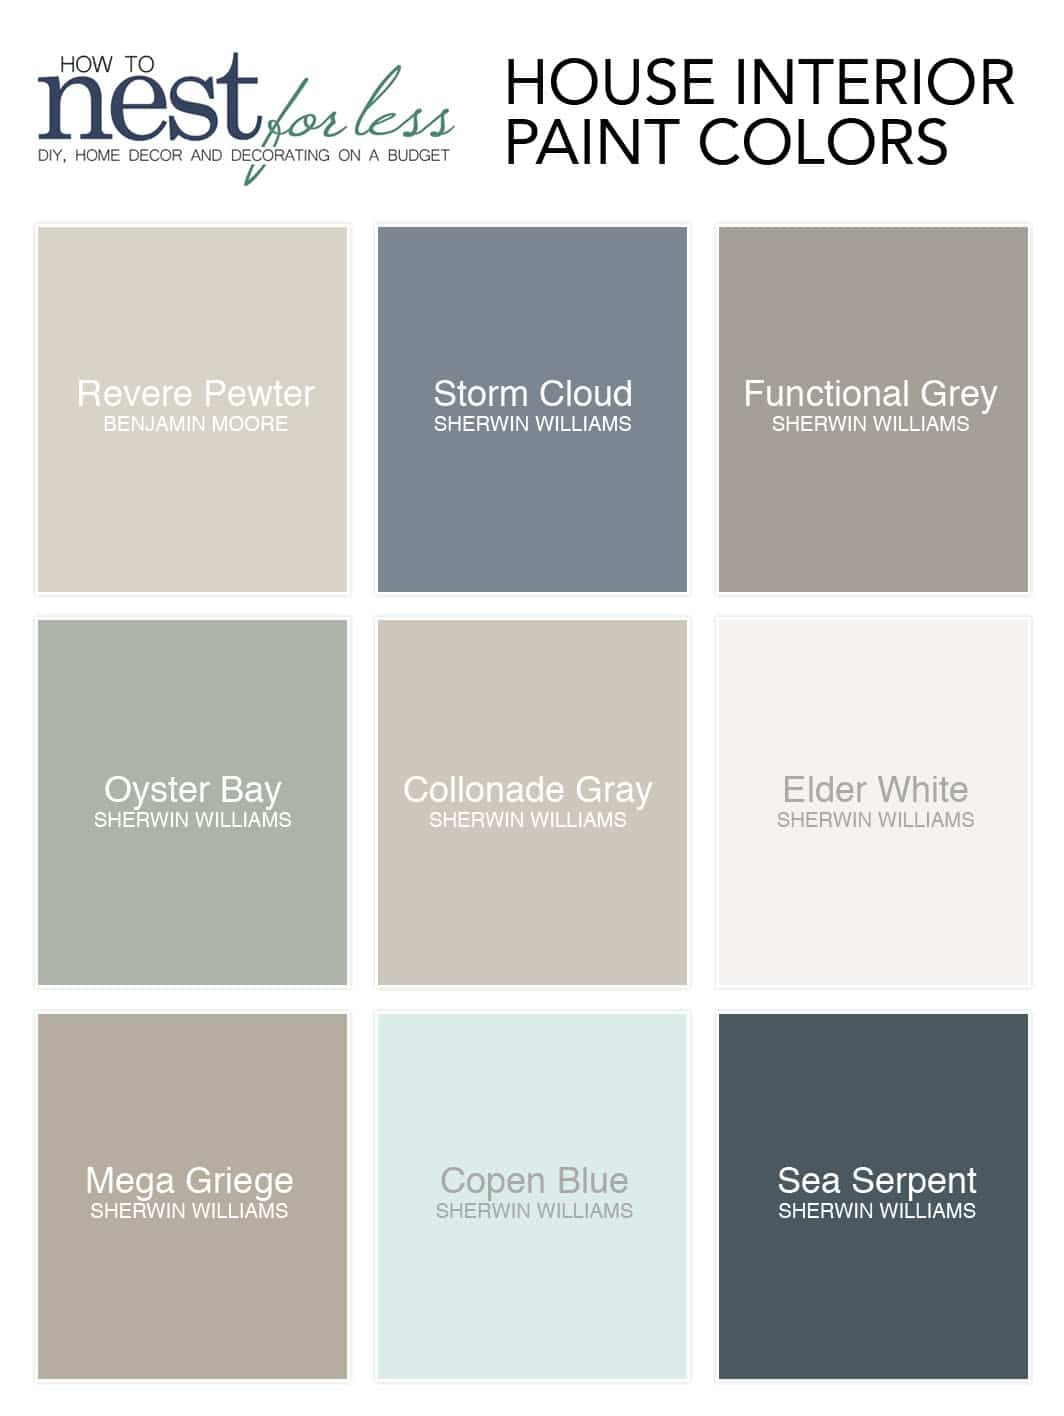 All the paint colors i use in my house how to nest for less for Exterior house paint comparison chart